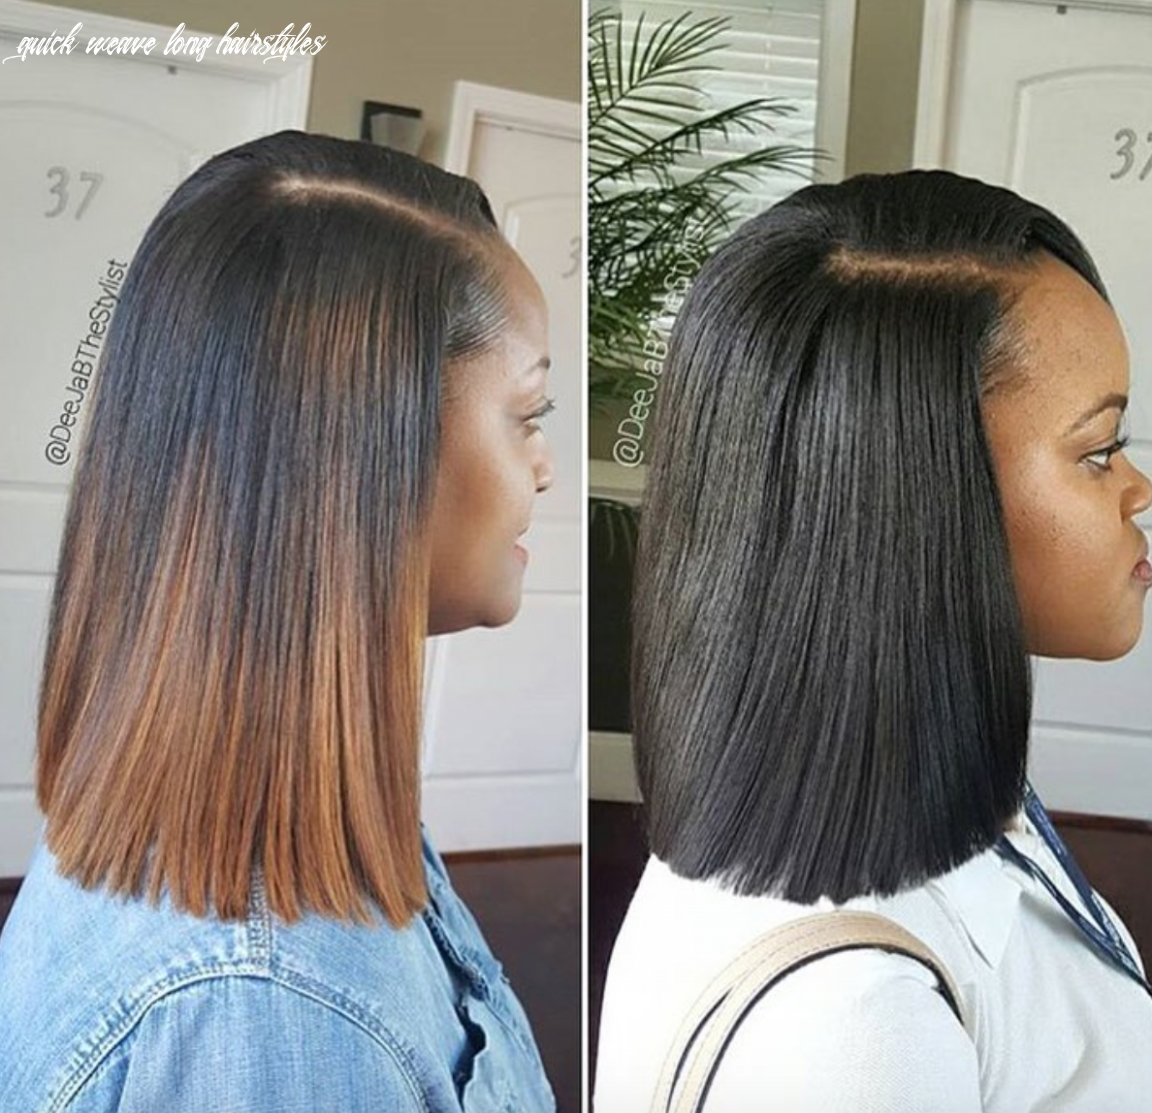 Amazing sew in vs quick weave by @deejabthestylist https